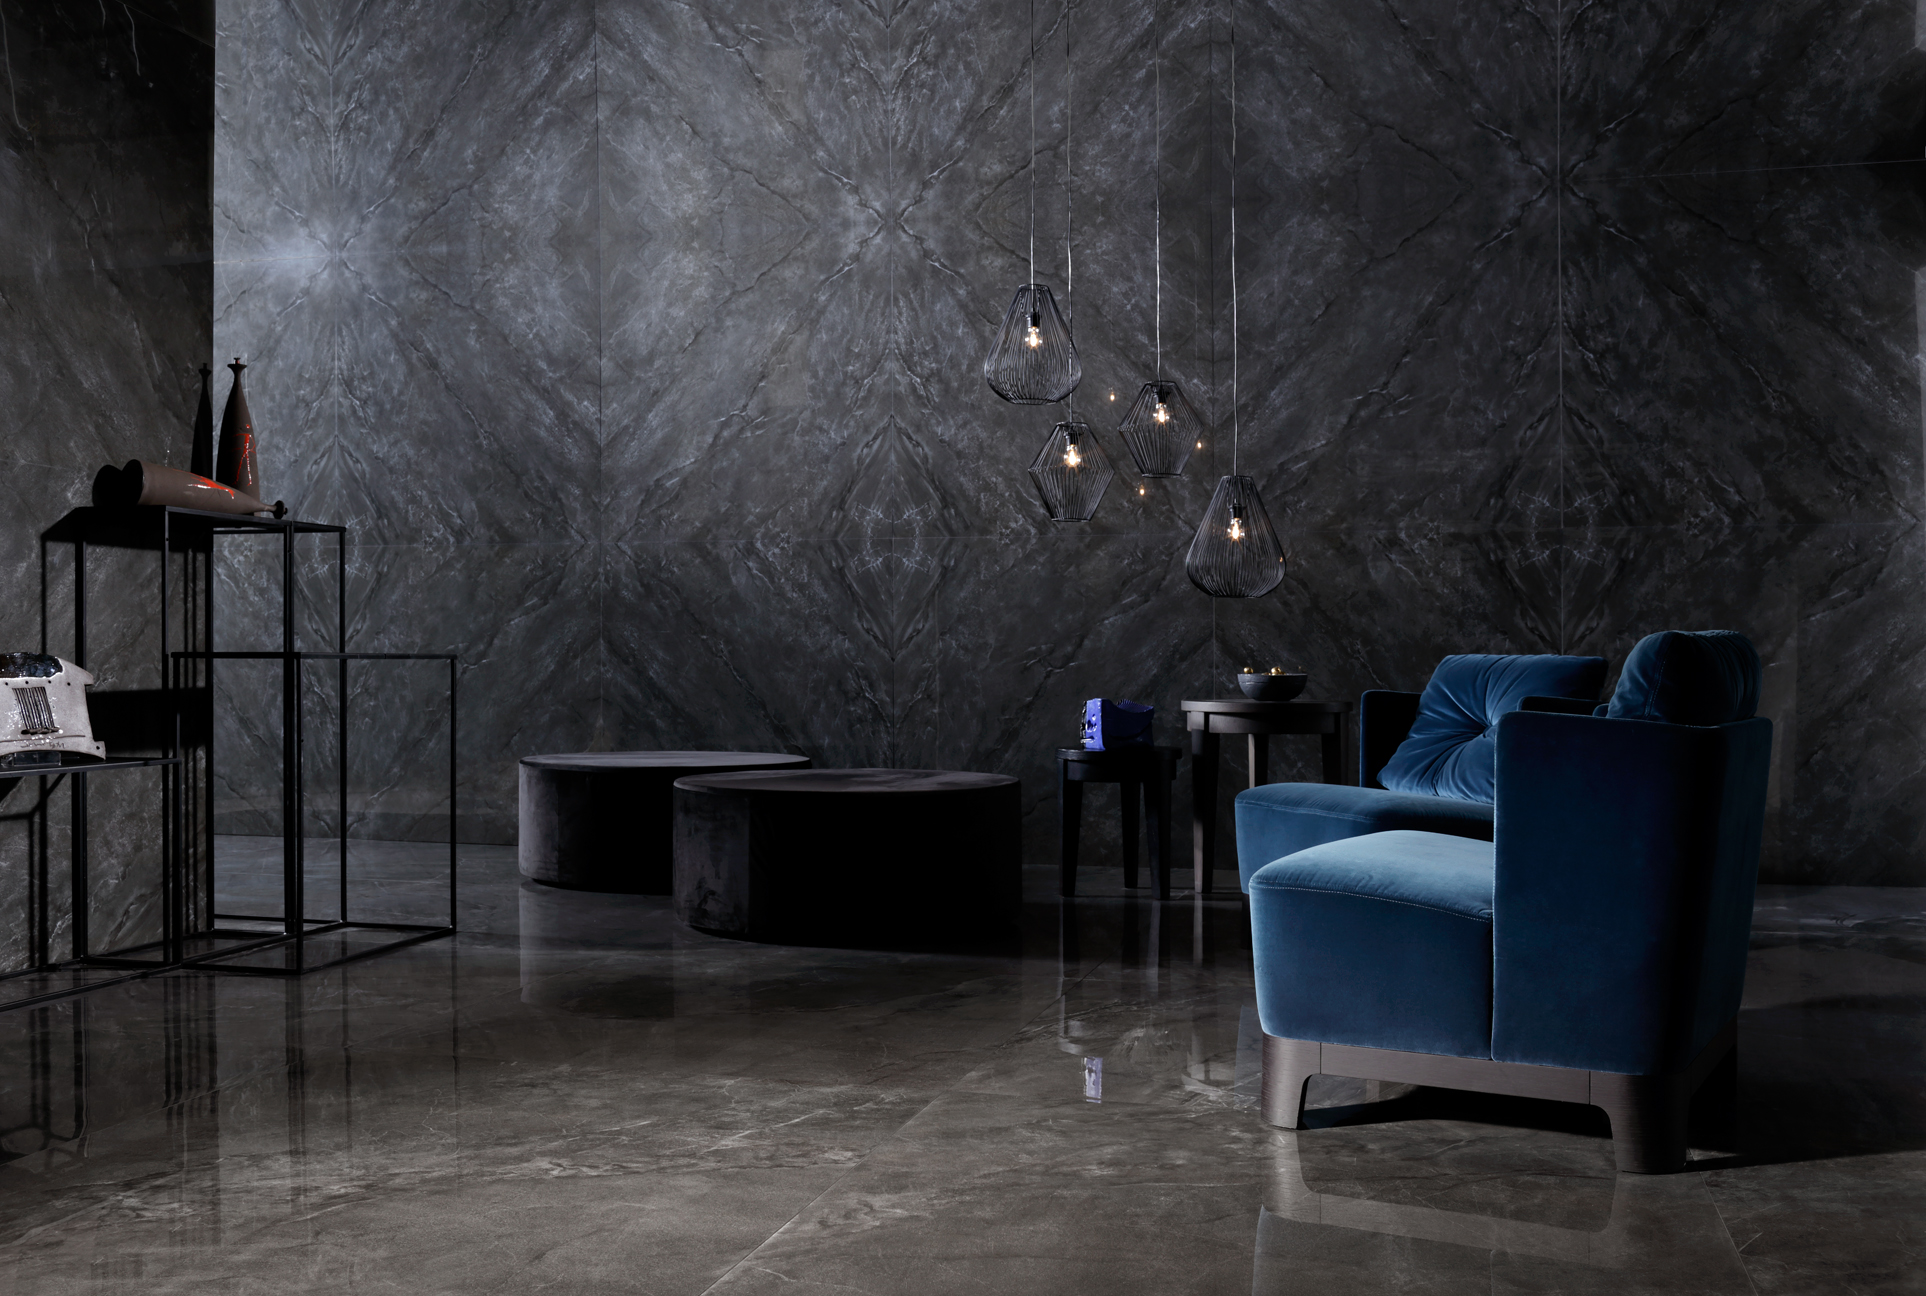 porcelain tile images: Grandiosa range high quality photo